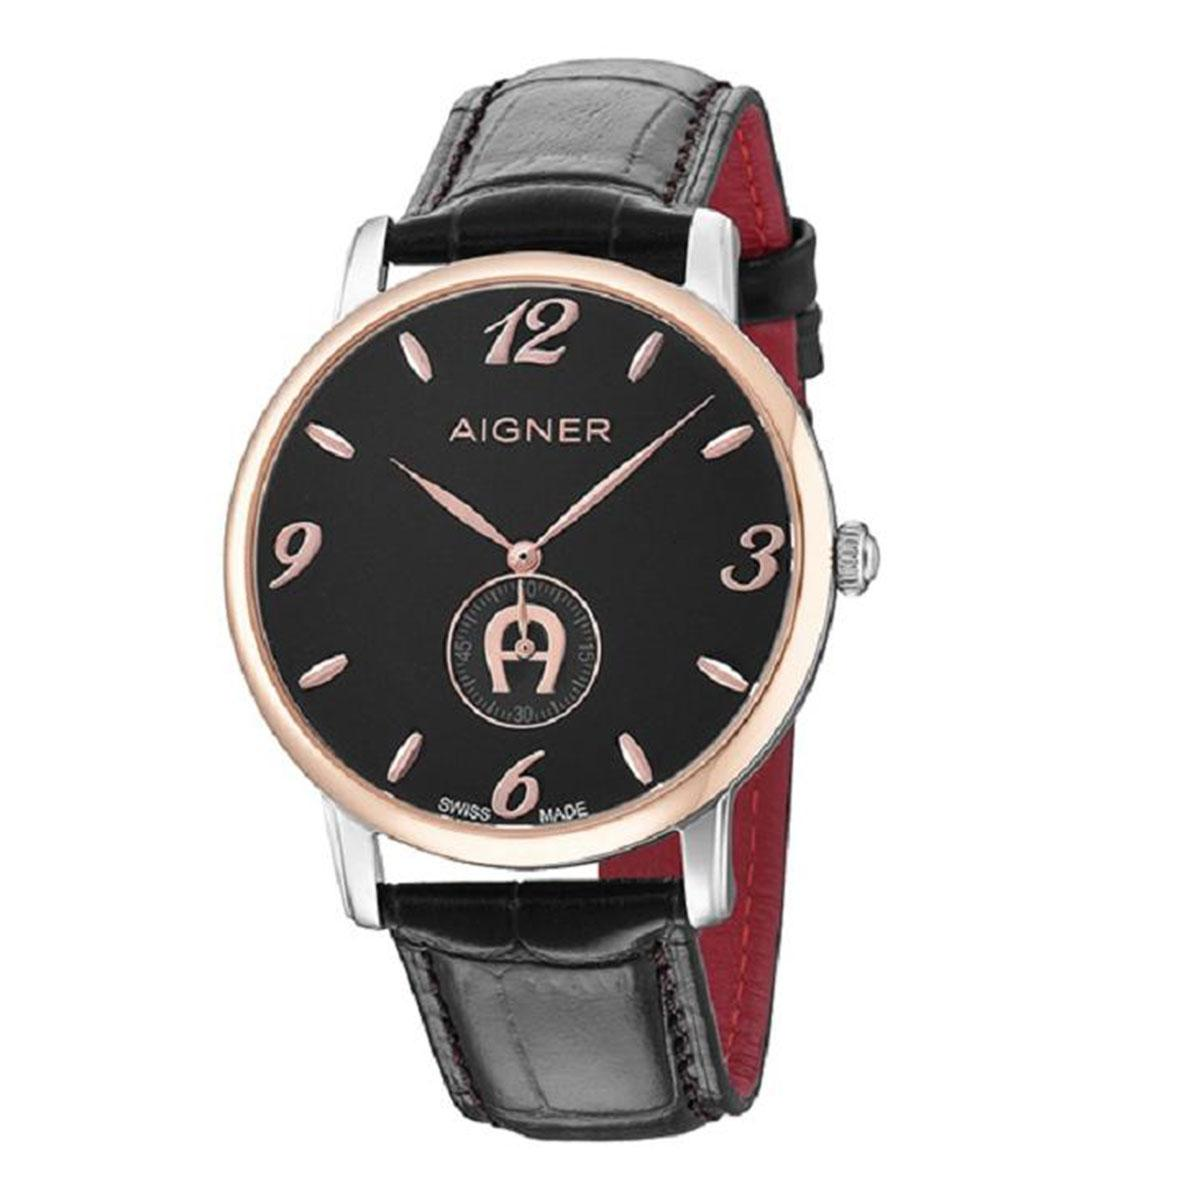 Aigner Watch For Women Watches Price In Malaysia Best Viareggio Black Stainless Steel Case Leather Strap Ladies A04112